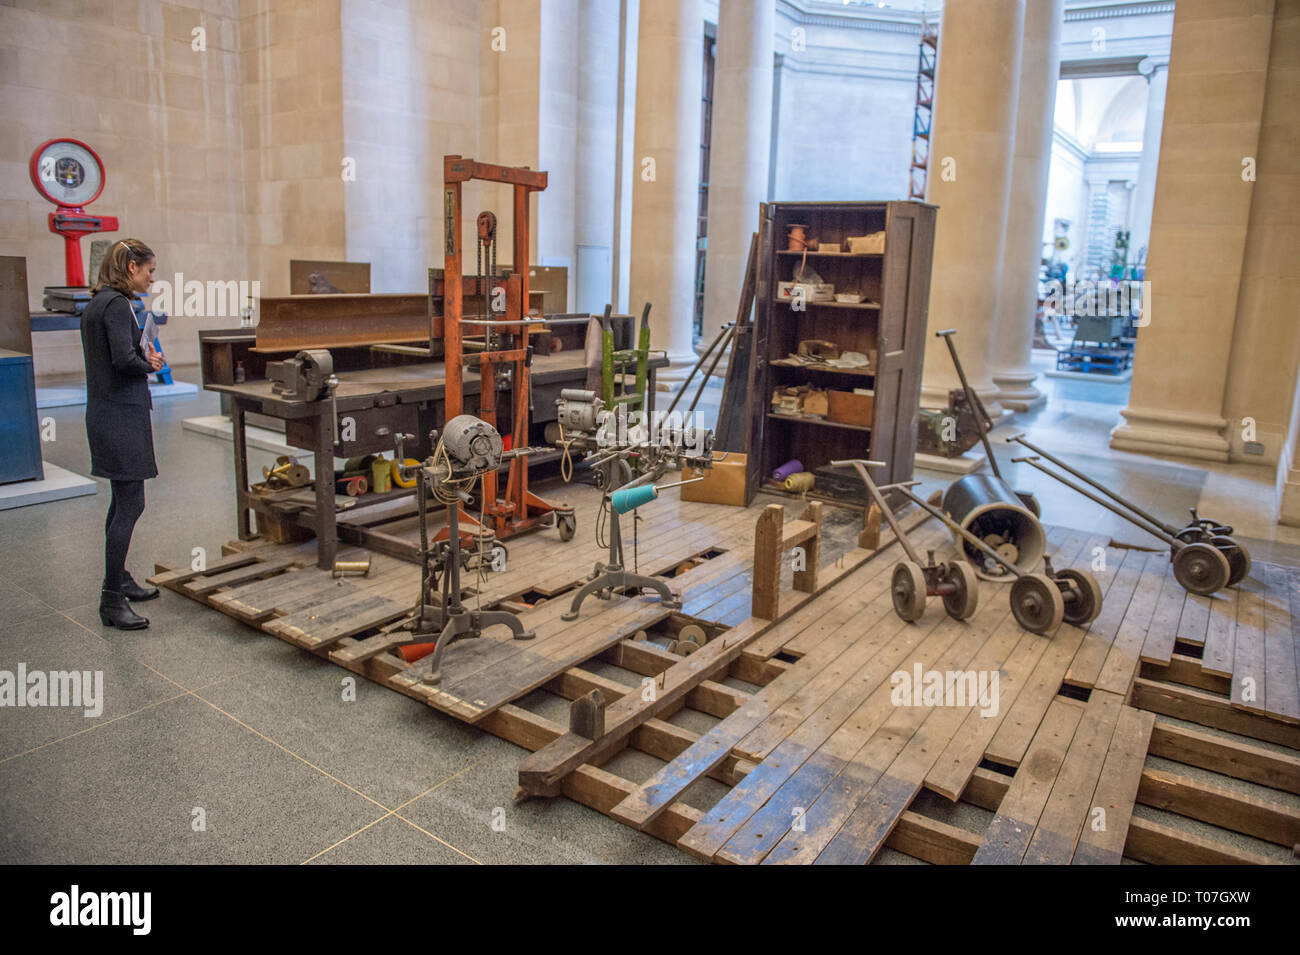 Tate Britain, London, UK. 18th Mar, 2019. Tate Britain Commission 2019: Mike Nelson, The Asset Strippers. For the annual commission Mike Nelson has constructed a large-scale, site specific, cross between a sculpture court and asset strippers' warehouse in response to the unique architecture and history of the neo-classical Duveen Galleries at the heart of Tate Britain. Credit: Malcolm Park/Alamy Live News - Stock Image